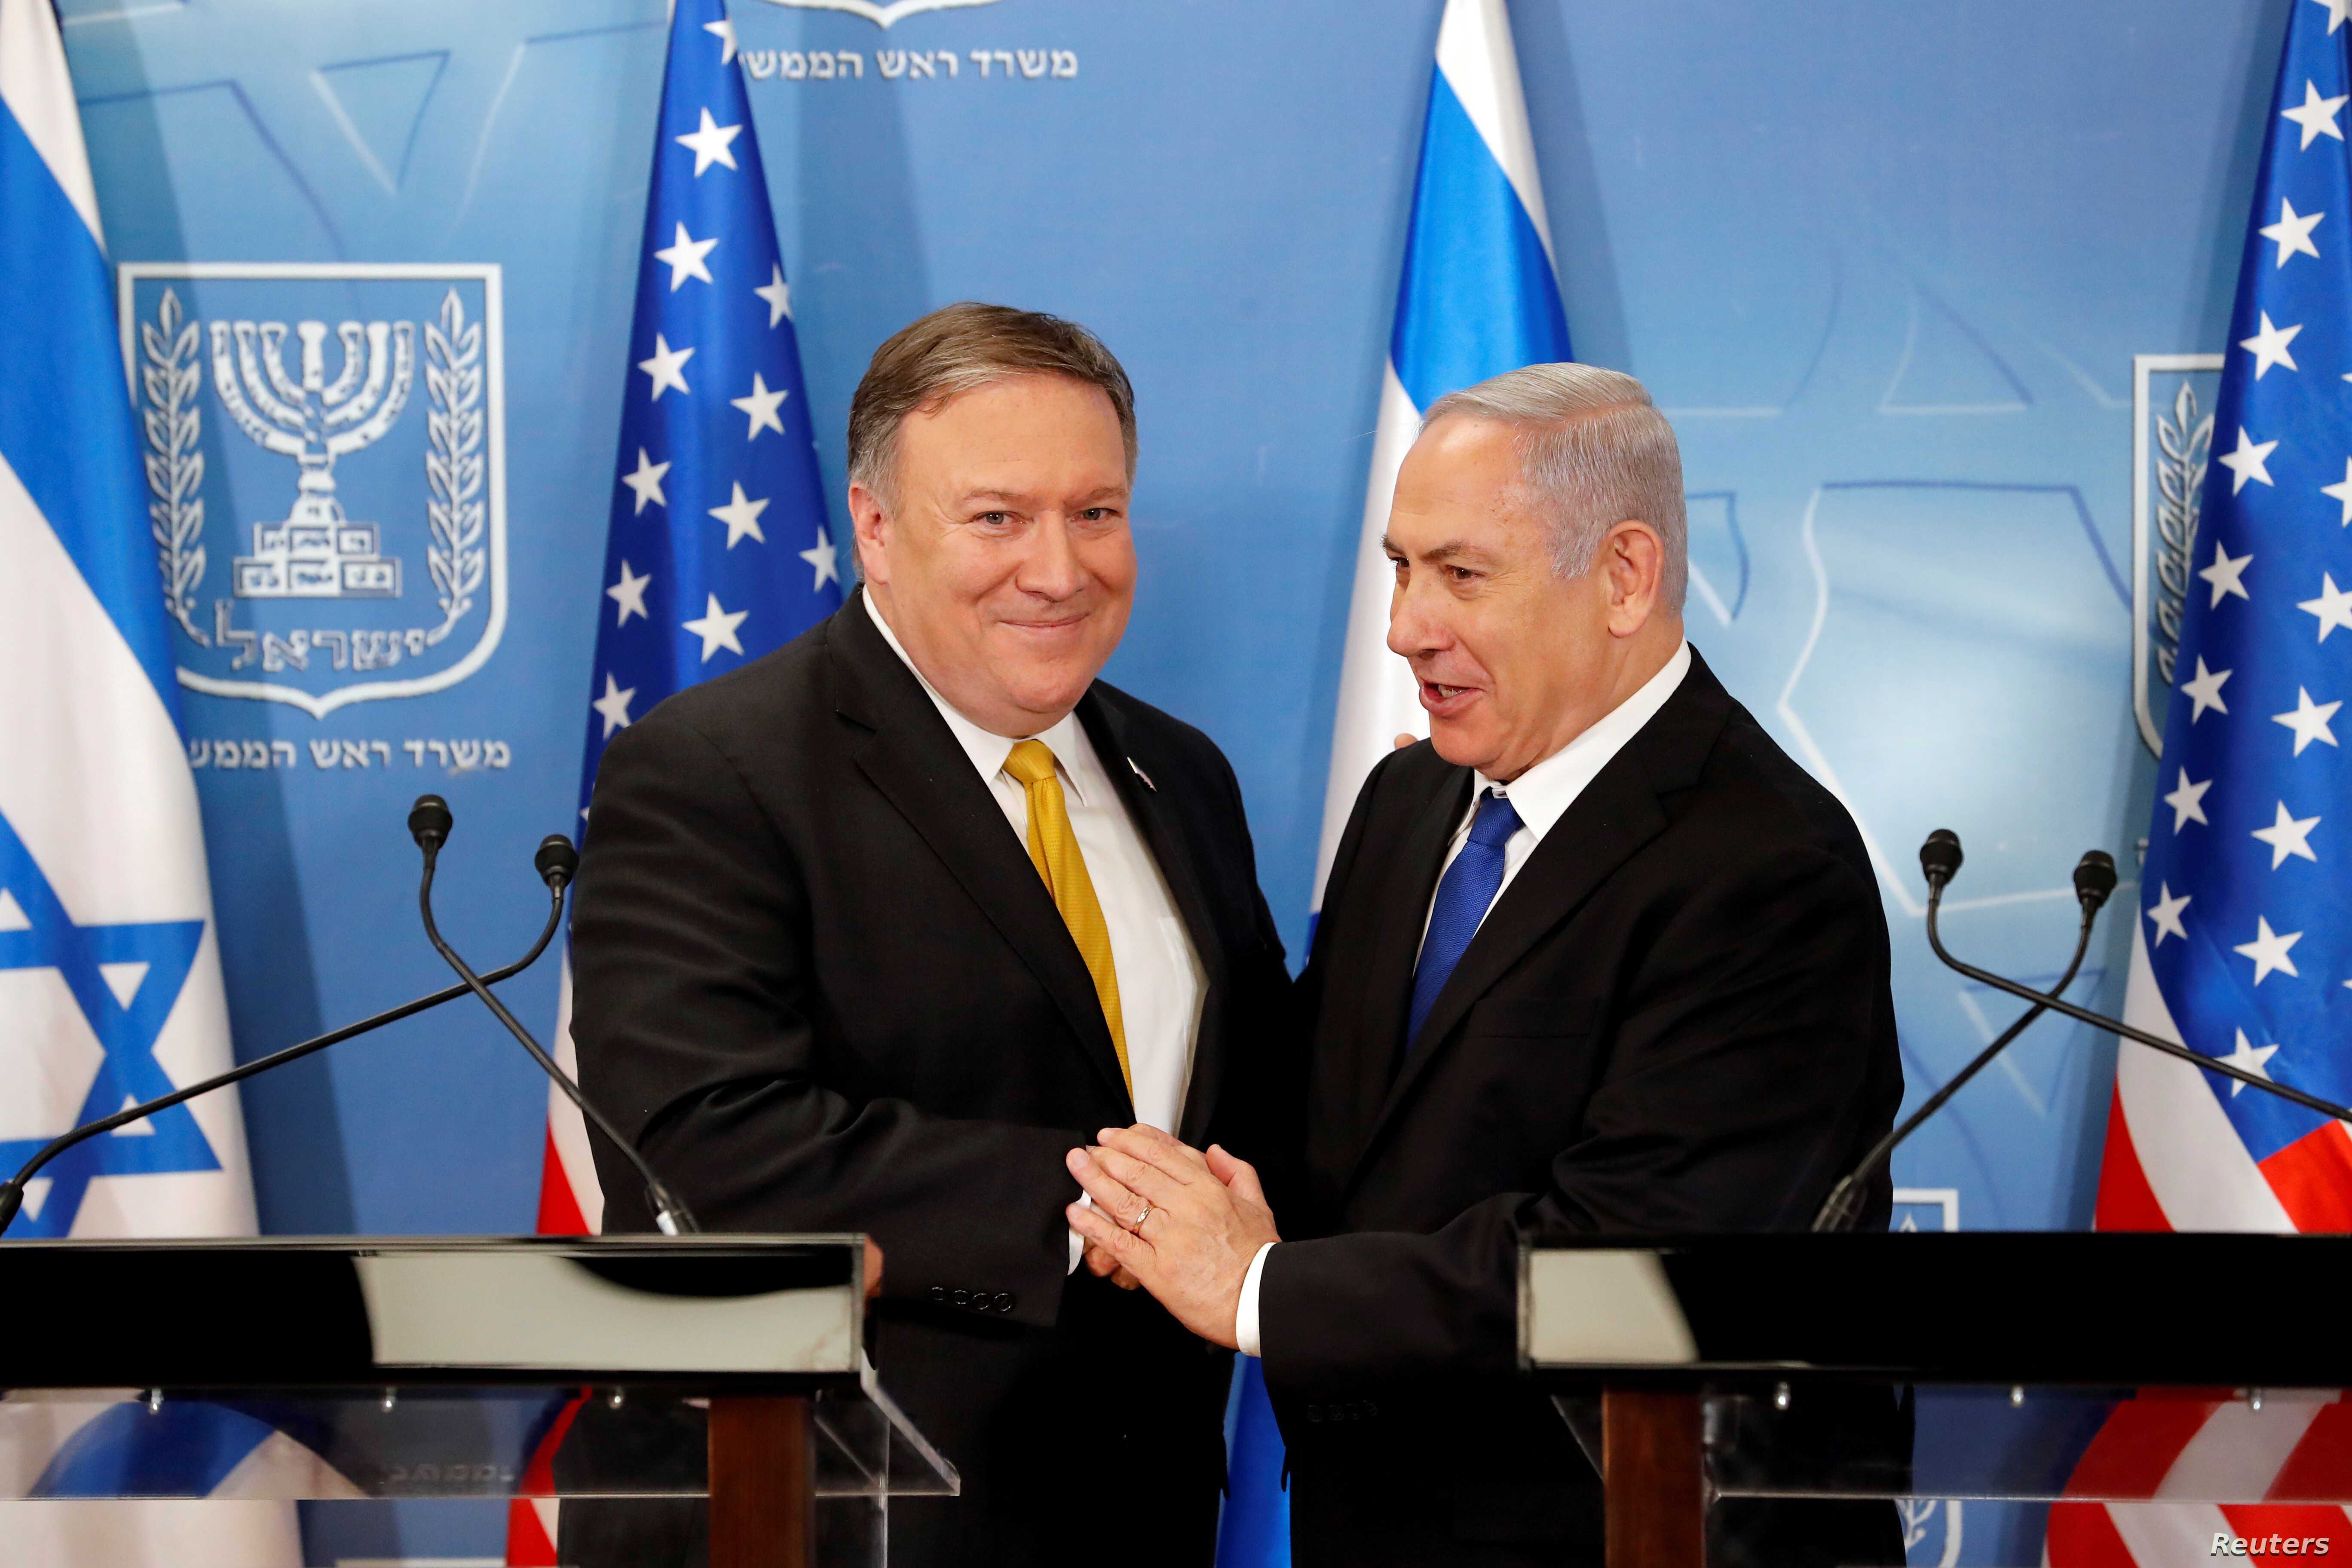 Israeli Prime Minister Benjamin Netanyahu shakes hands with U.S. Secretary of State Mike Pompeo during a meeting at the Ministry of Defence in Tel Aviv, Israel, April 29, 2018